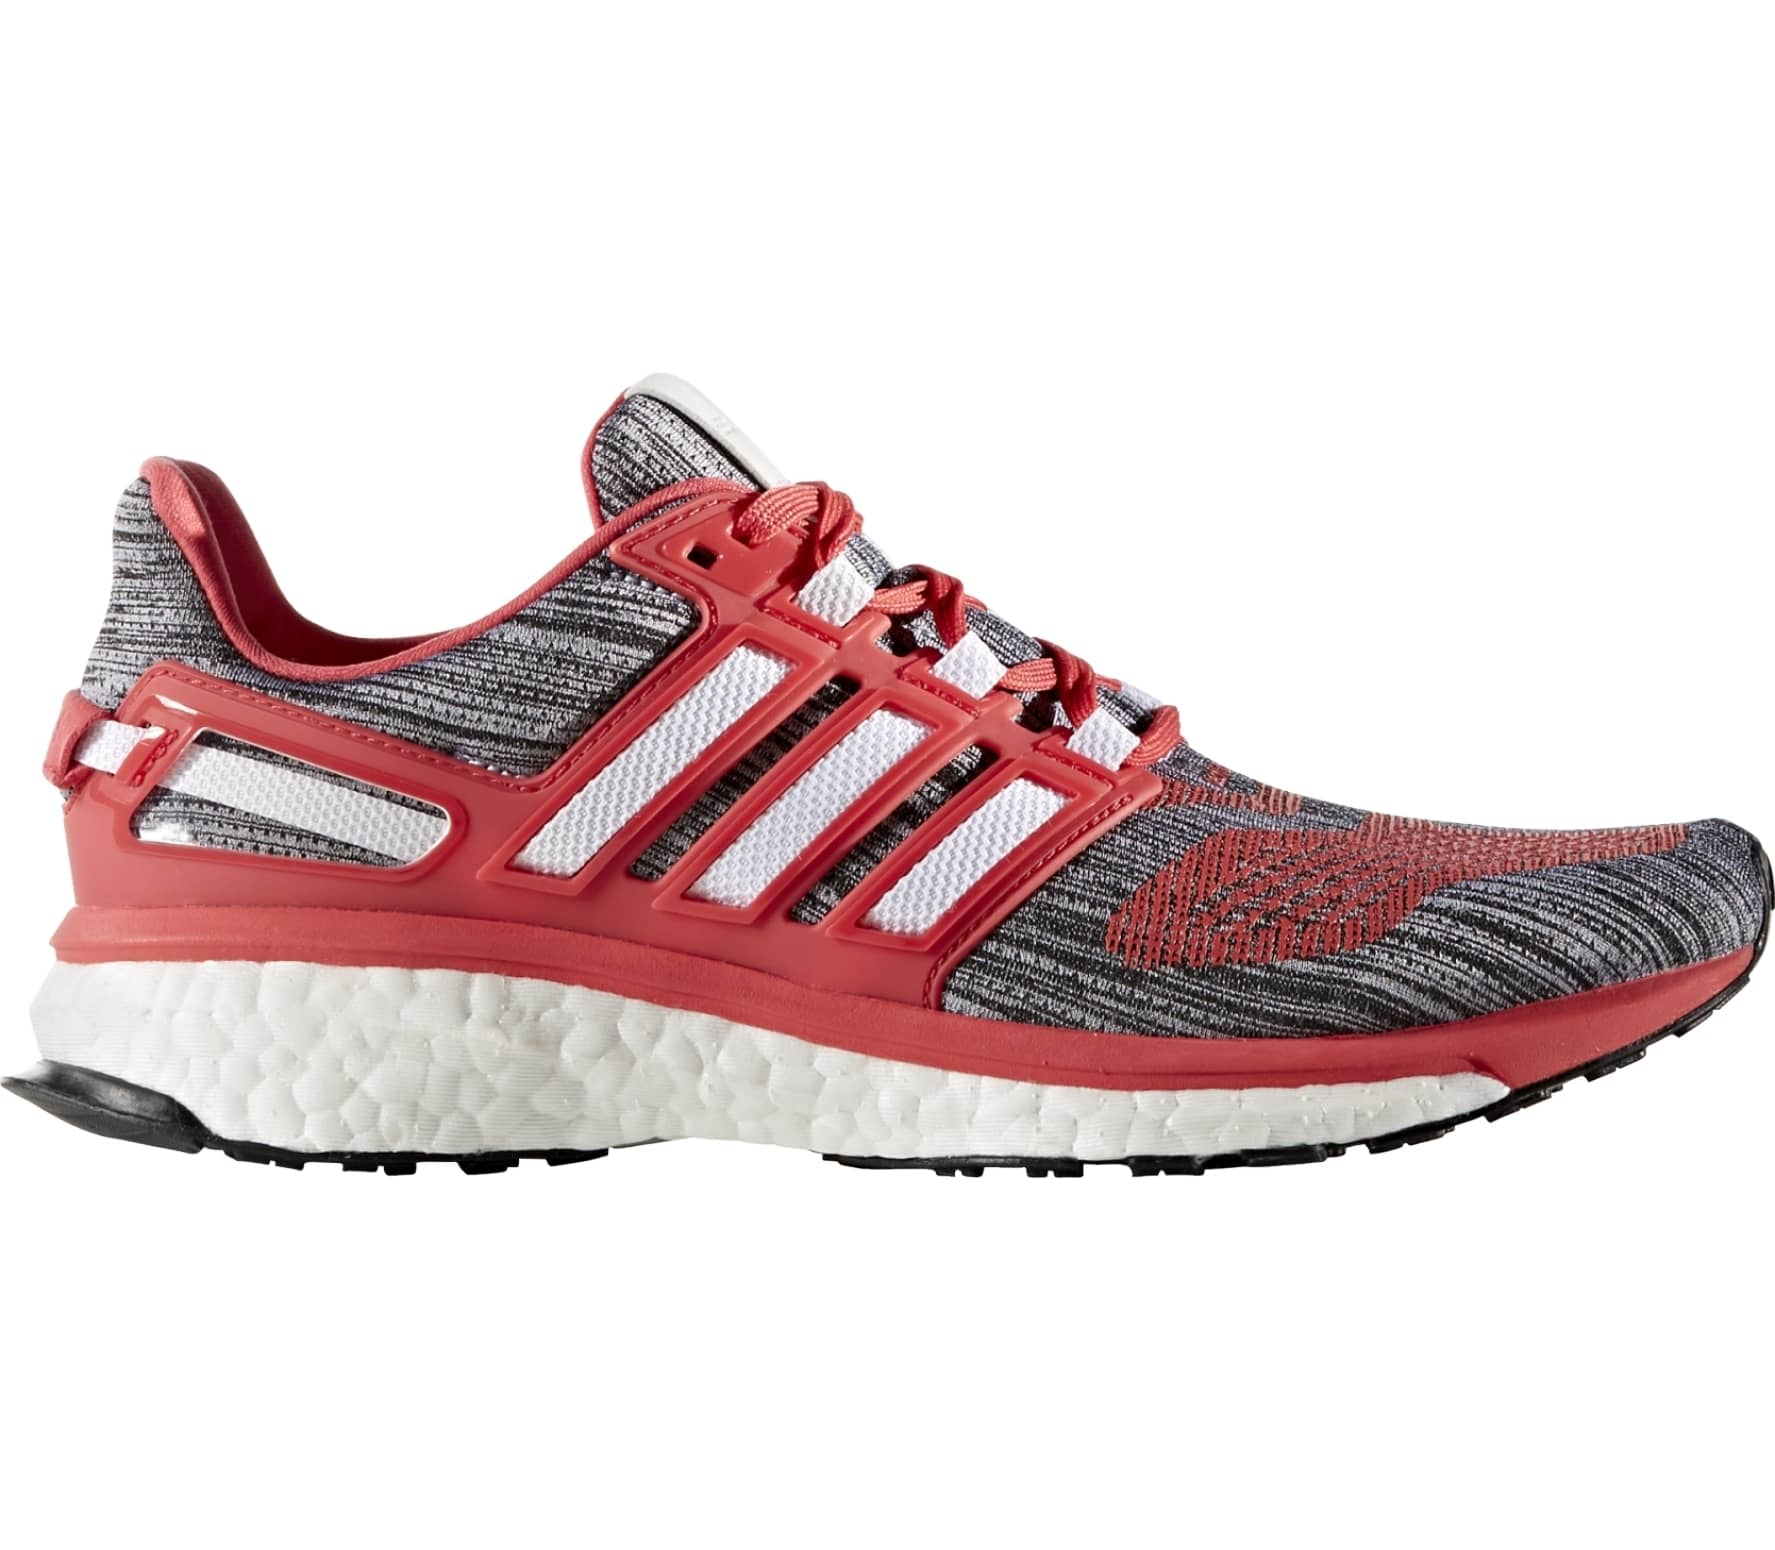 on sale 85543 dfc8f Adidas - Energy Boost 3 zapatillas de running para mujer (grisrojo)